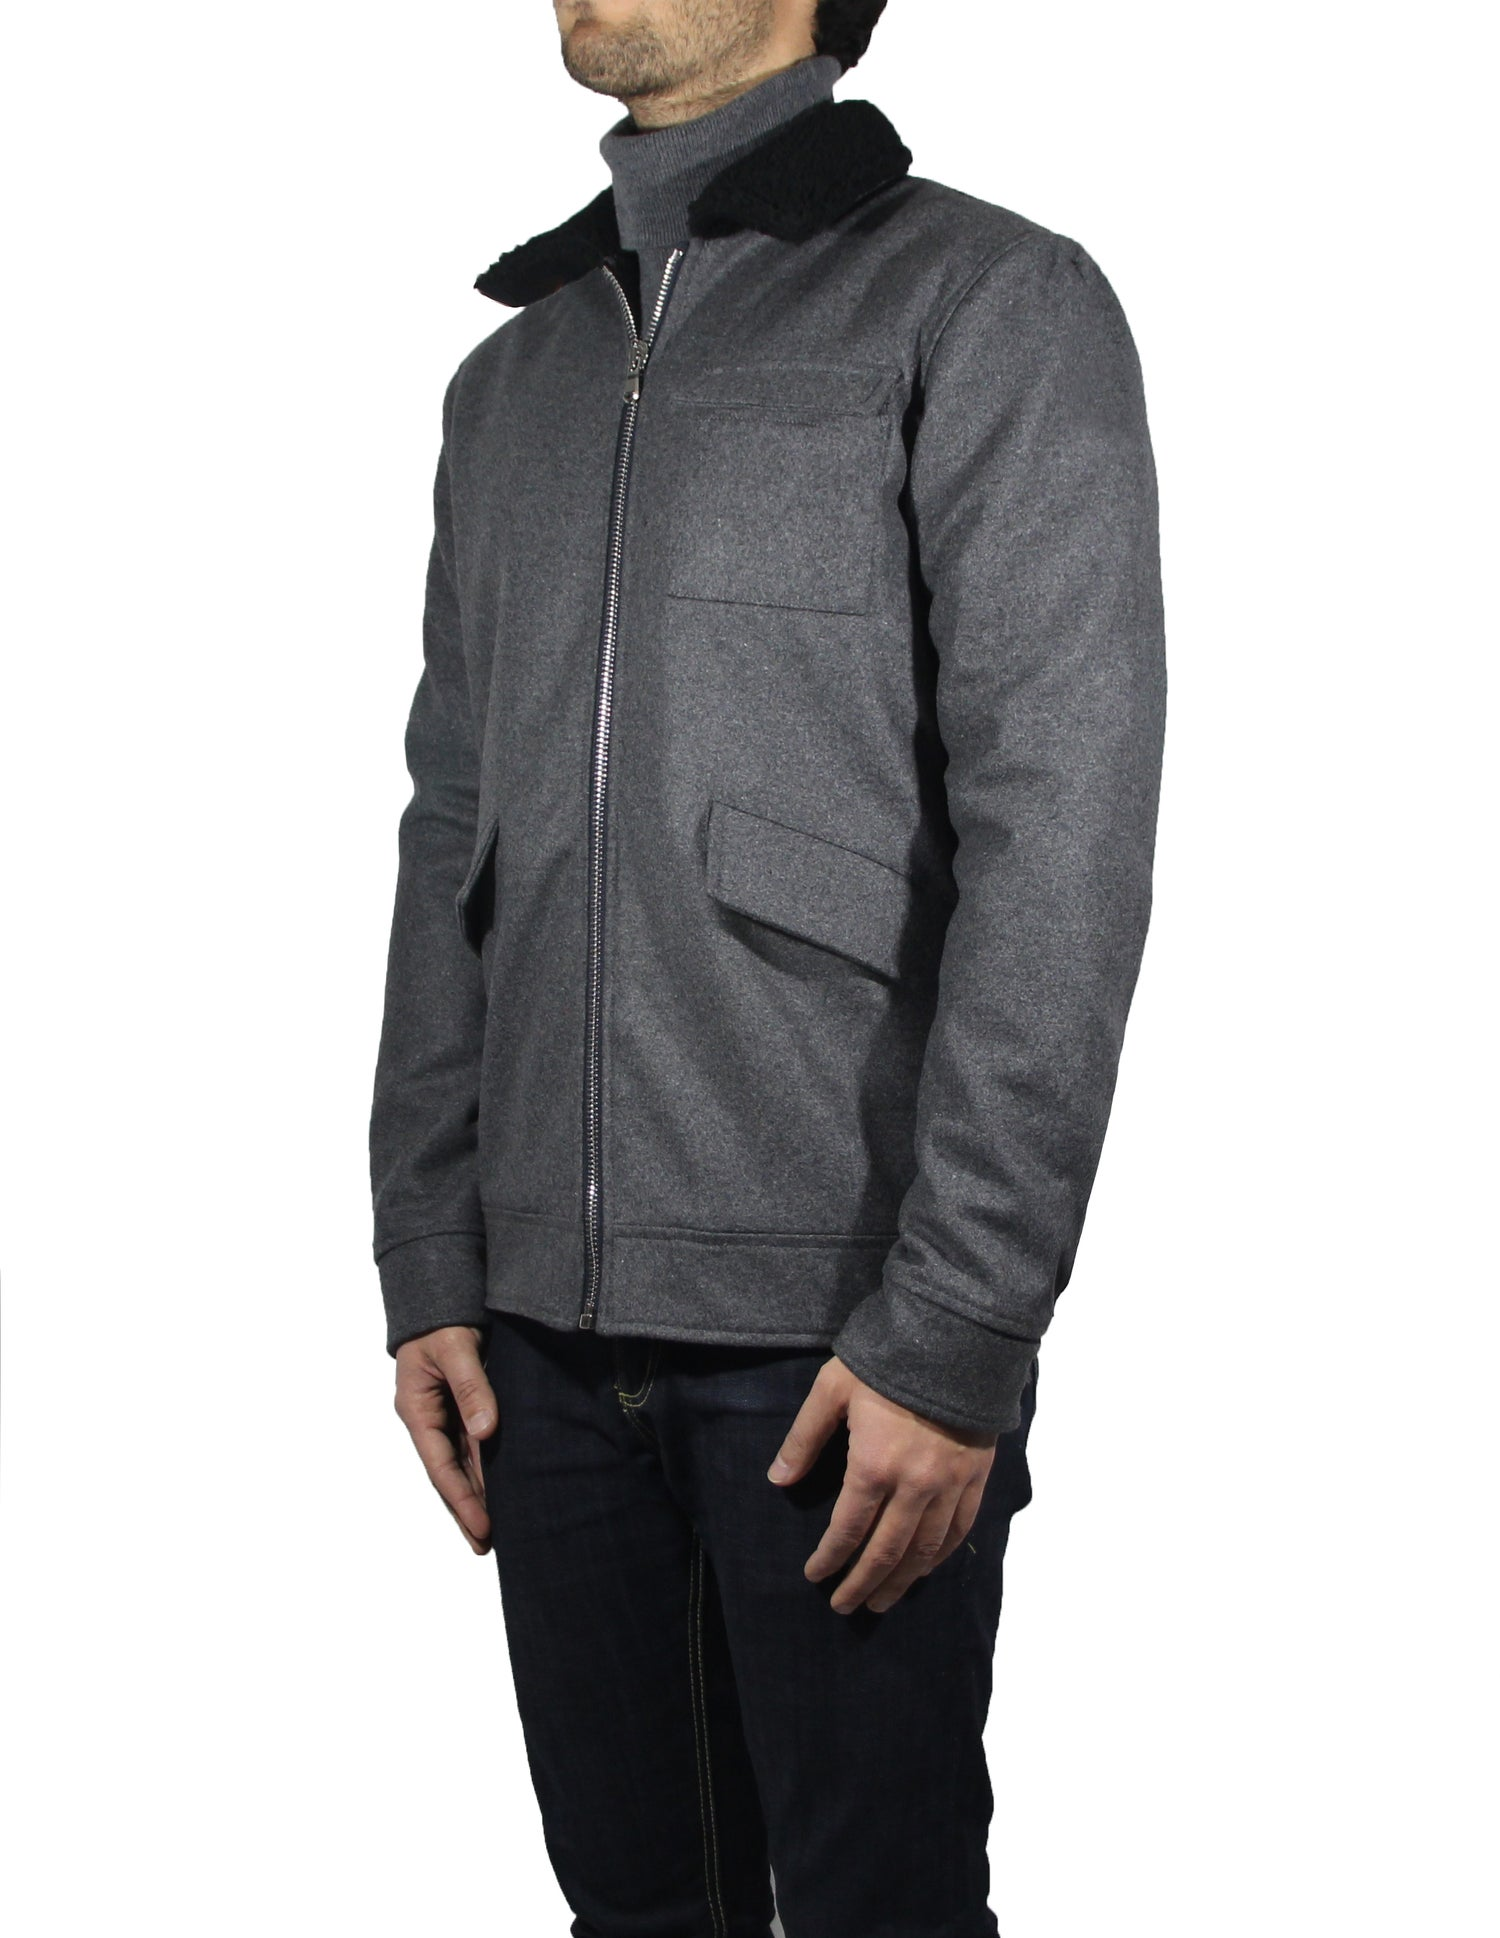 Image of GREY CASENTINO 1985 JACKET